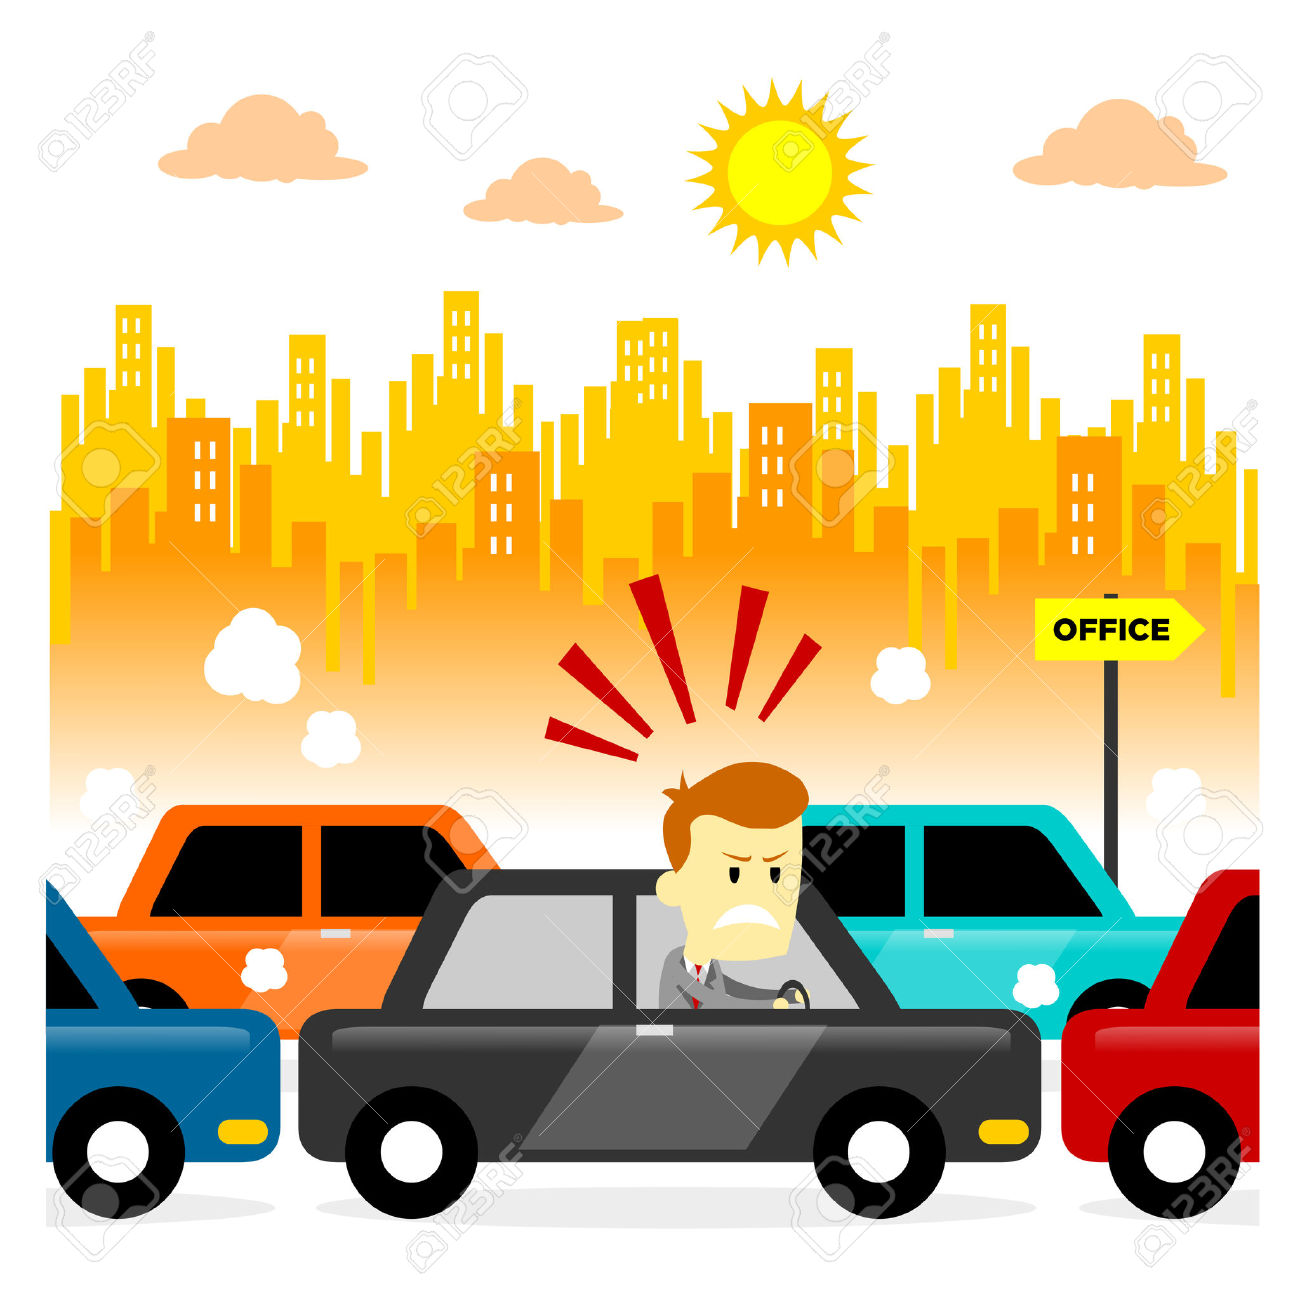 12,368 Traffic Style Stock Vector Illustration And Royalty Free.